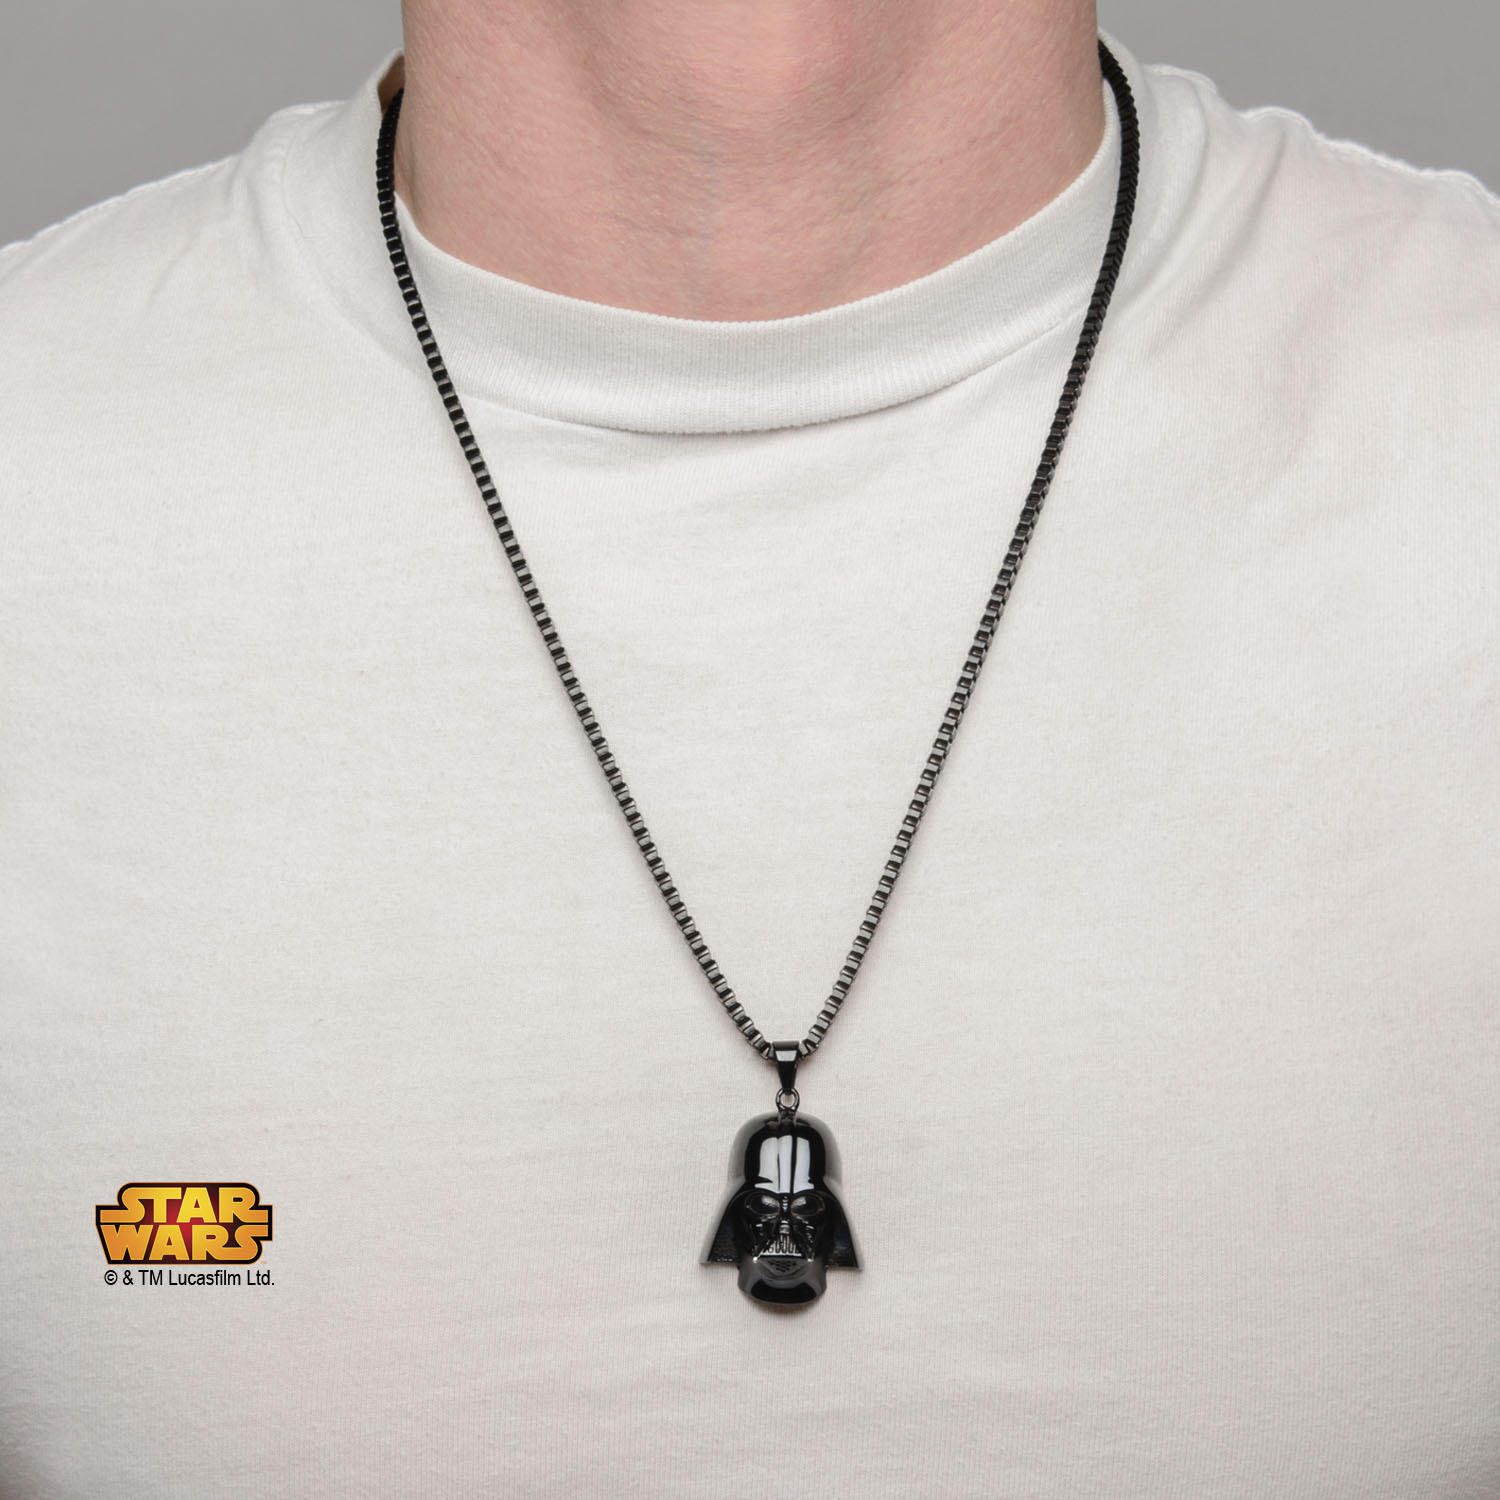 Star Wars Darth Vader Pendant Necklace image